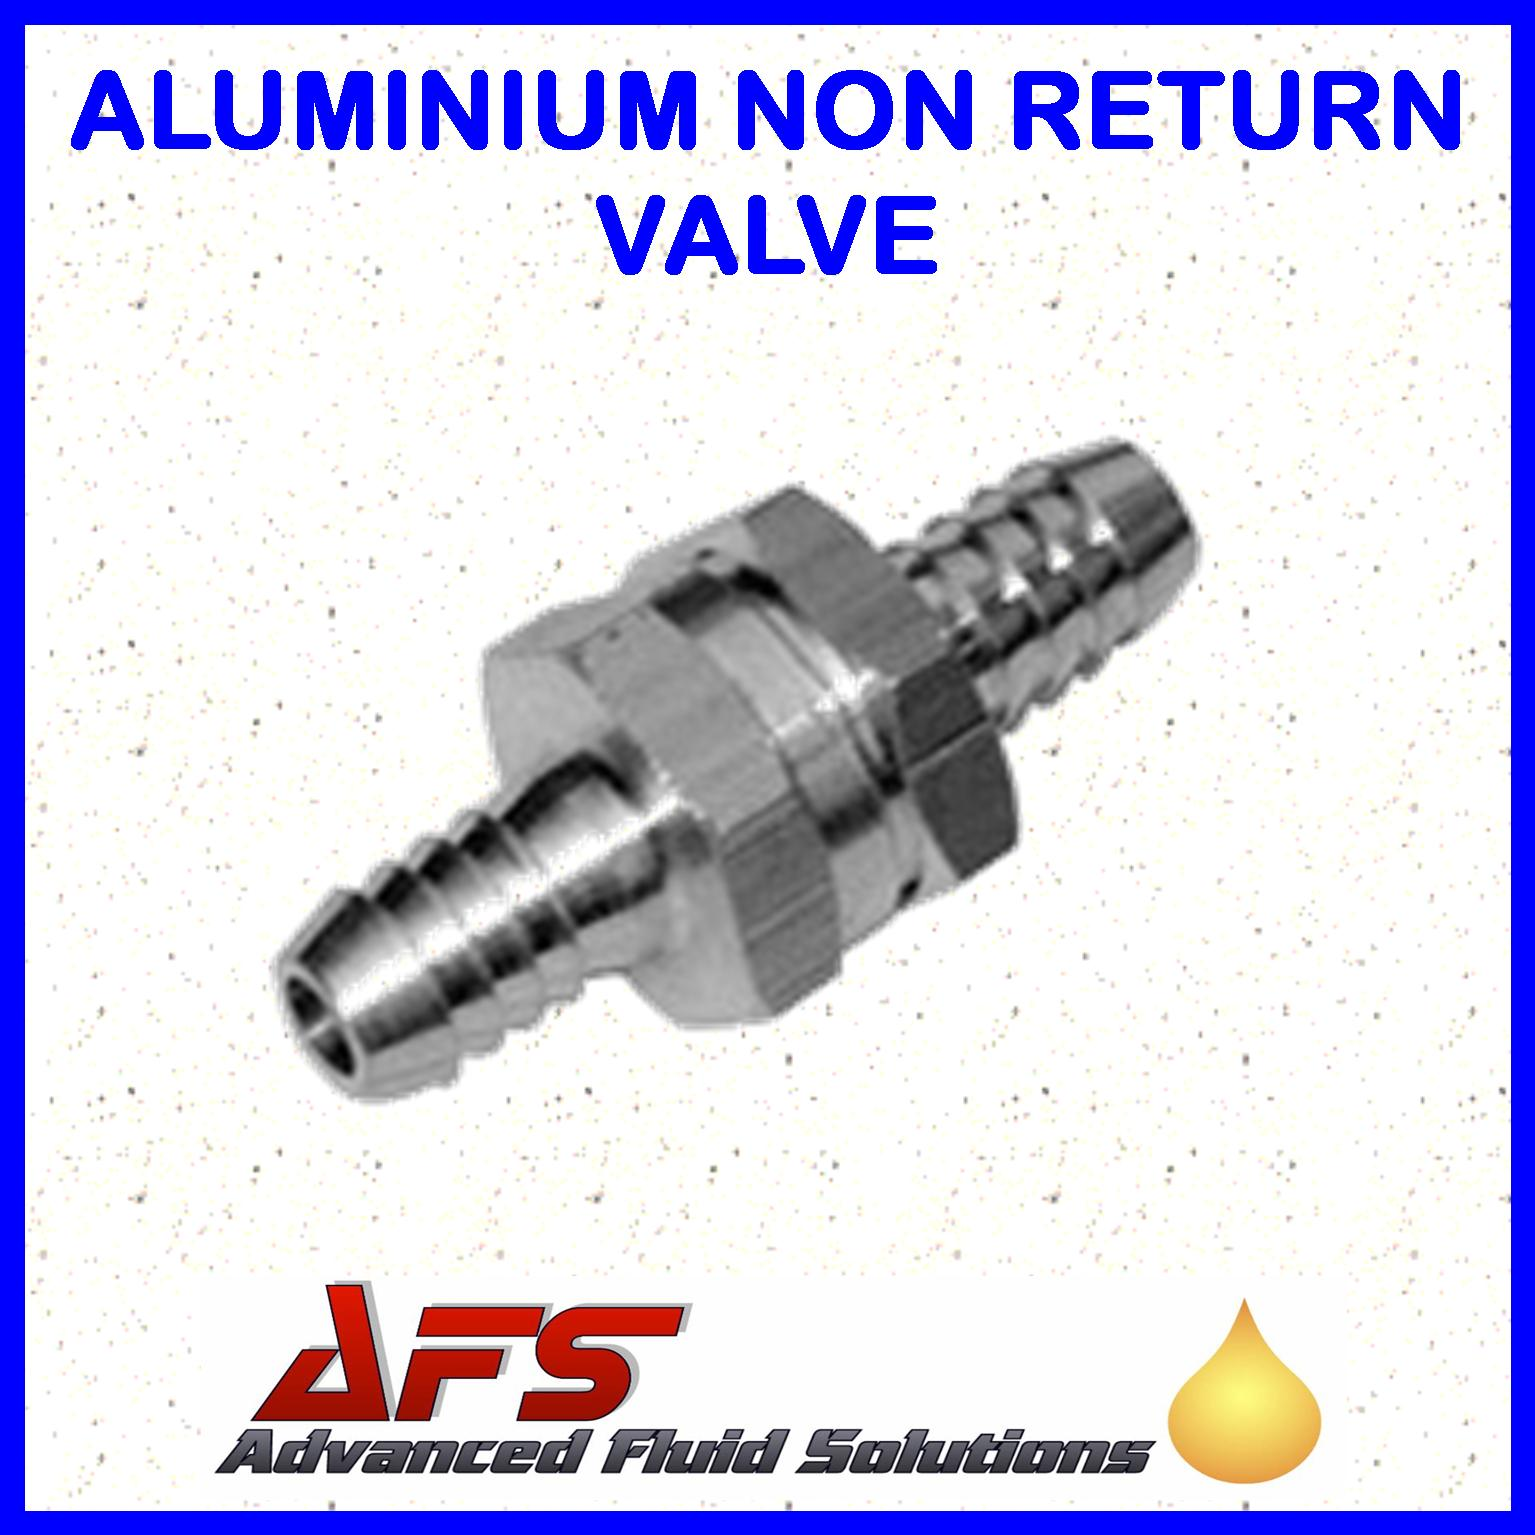 #C31100 12mm 1 2 Straight Non Return Valve Aluminium Fuel Check  Best 913 Air Duct Valve photos with 1535x1535 px on helpvideos.info - Air Conditioners, Air Coolers and more